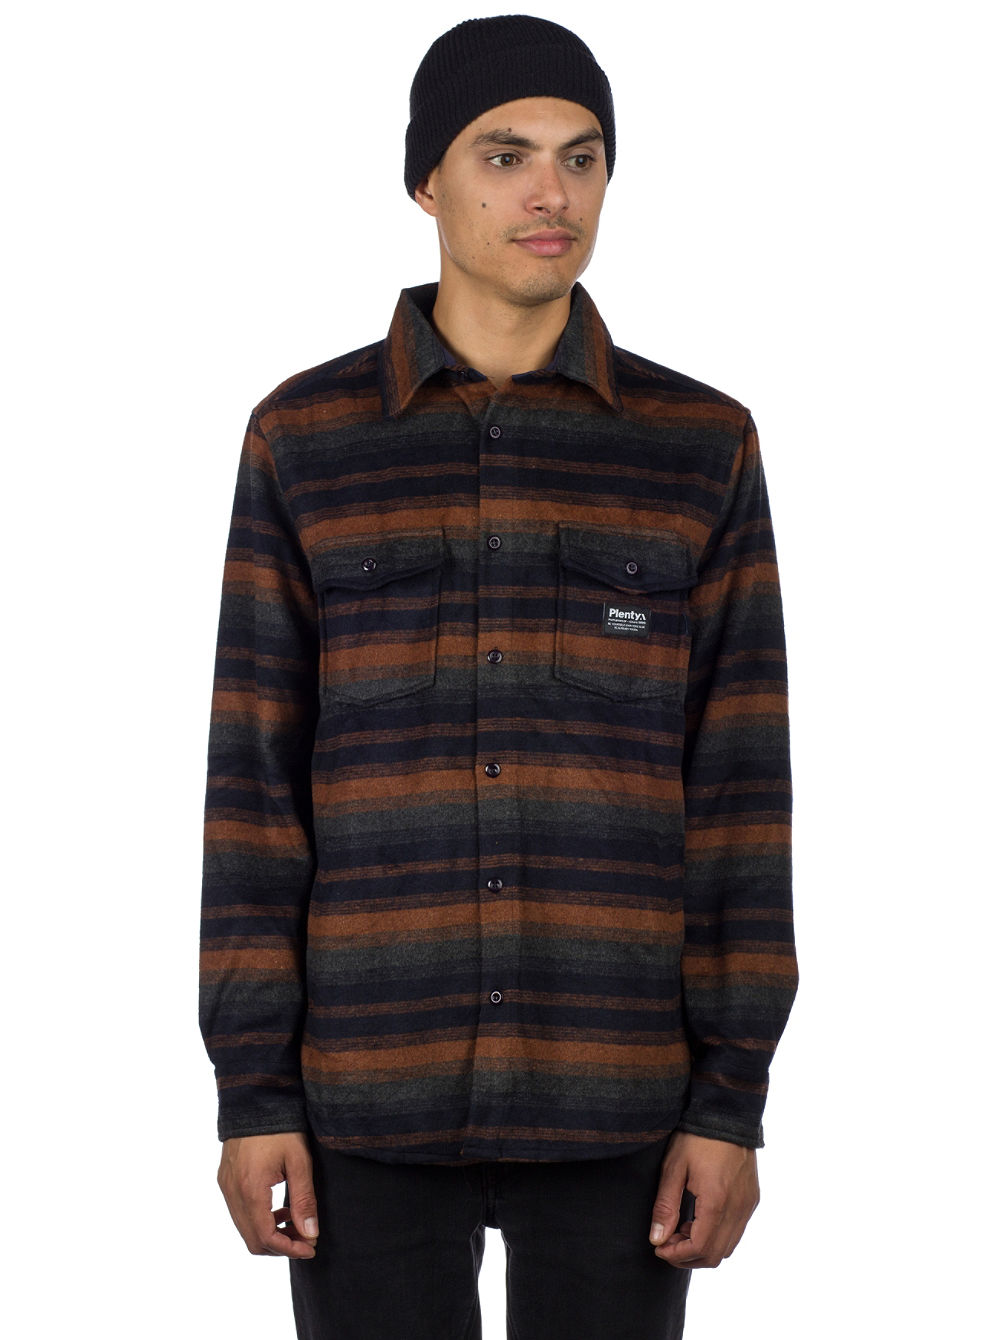 Damian Overshirt Jacket